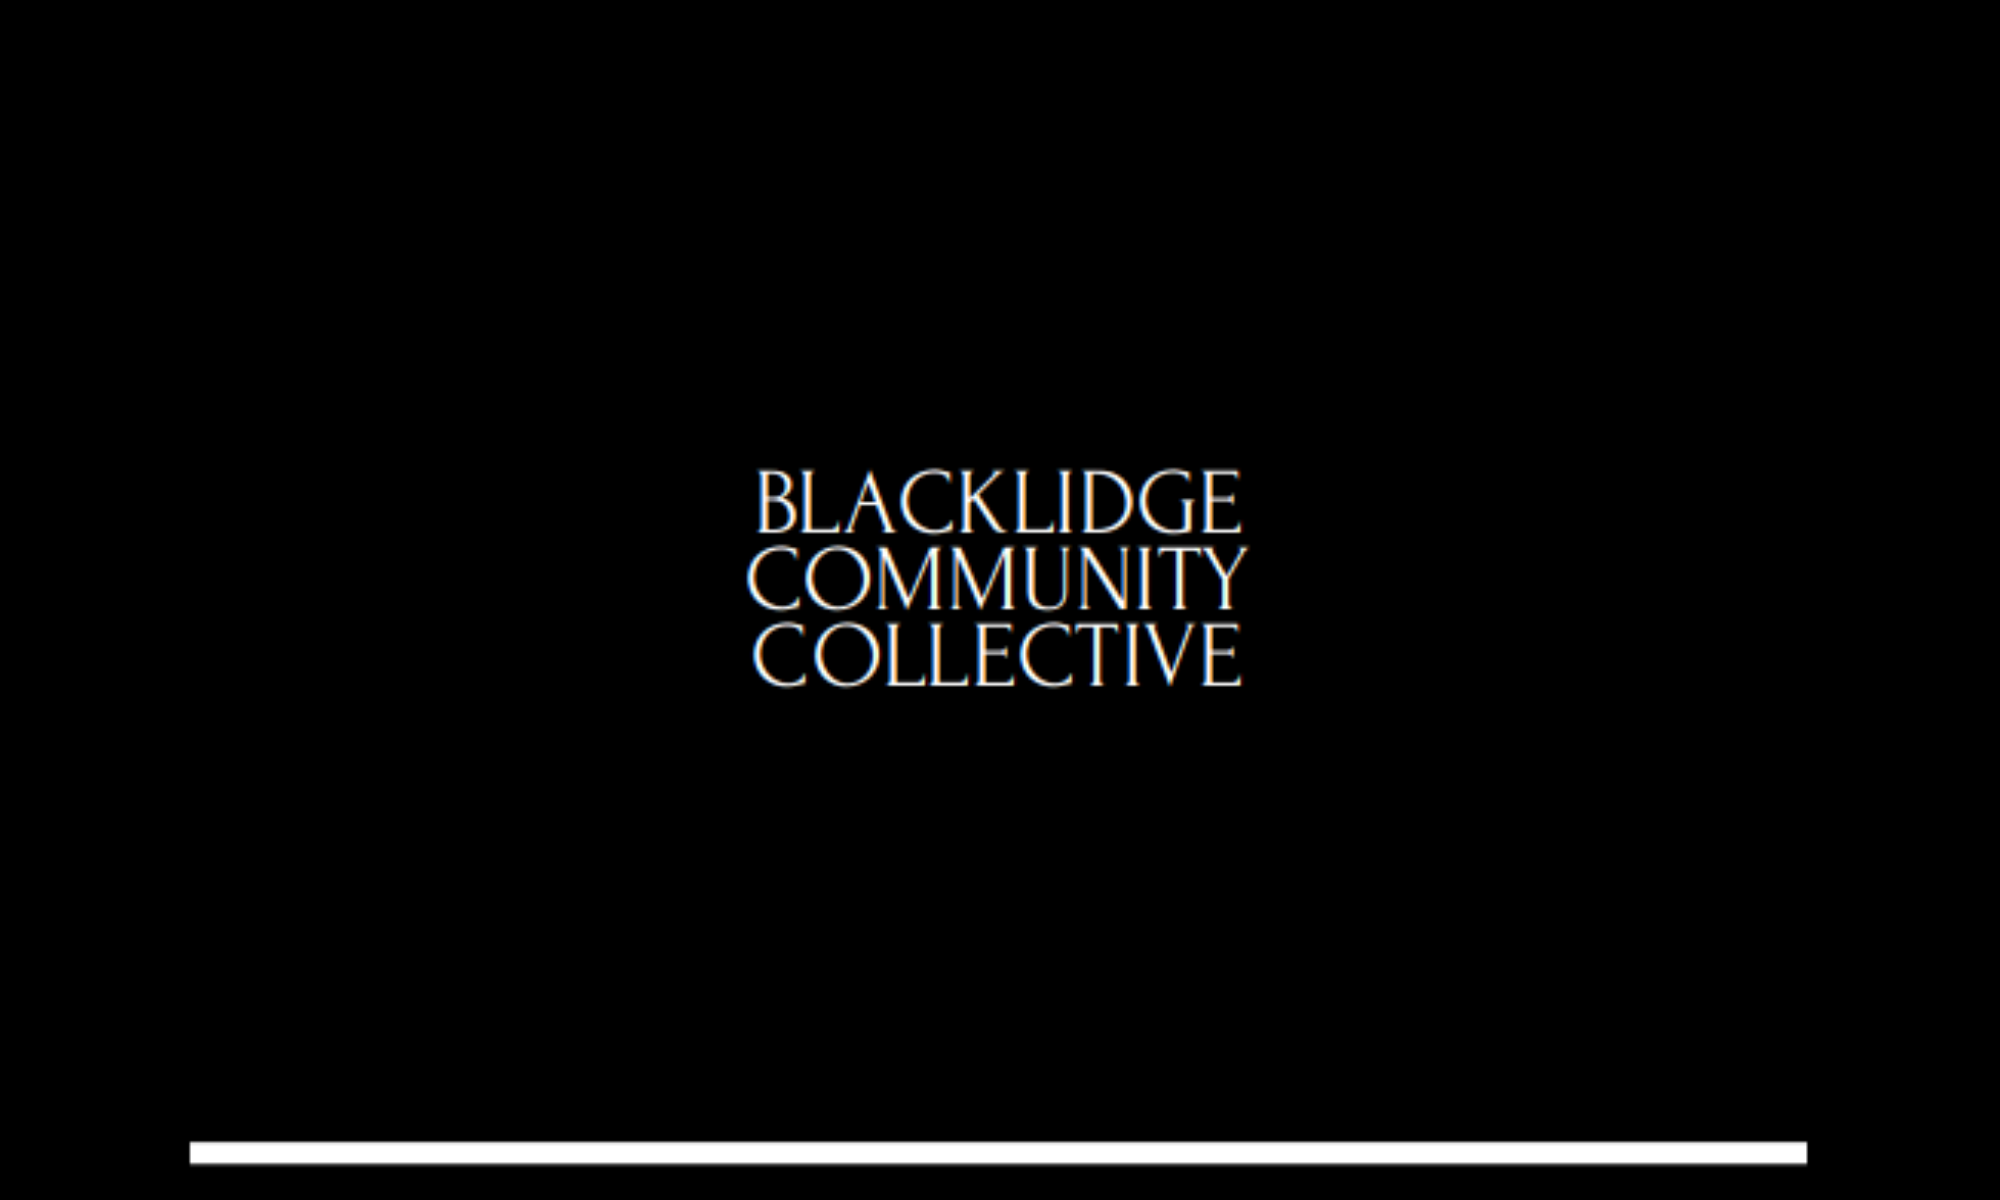 Blacklidge Community Collective